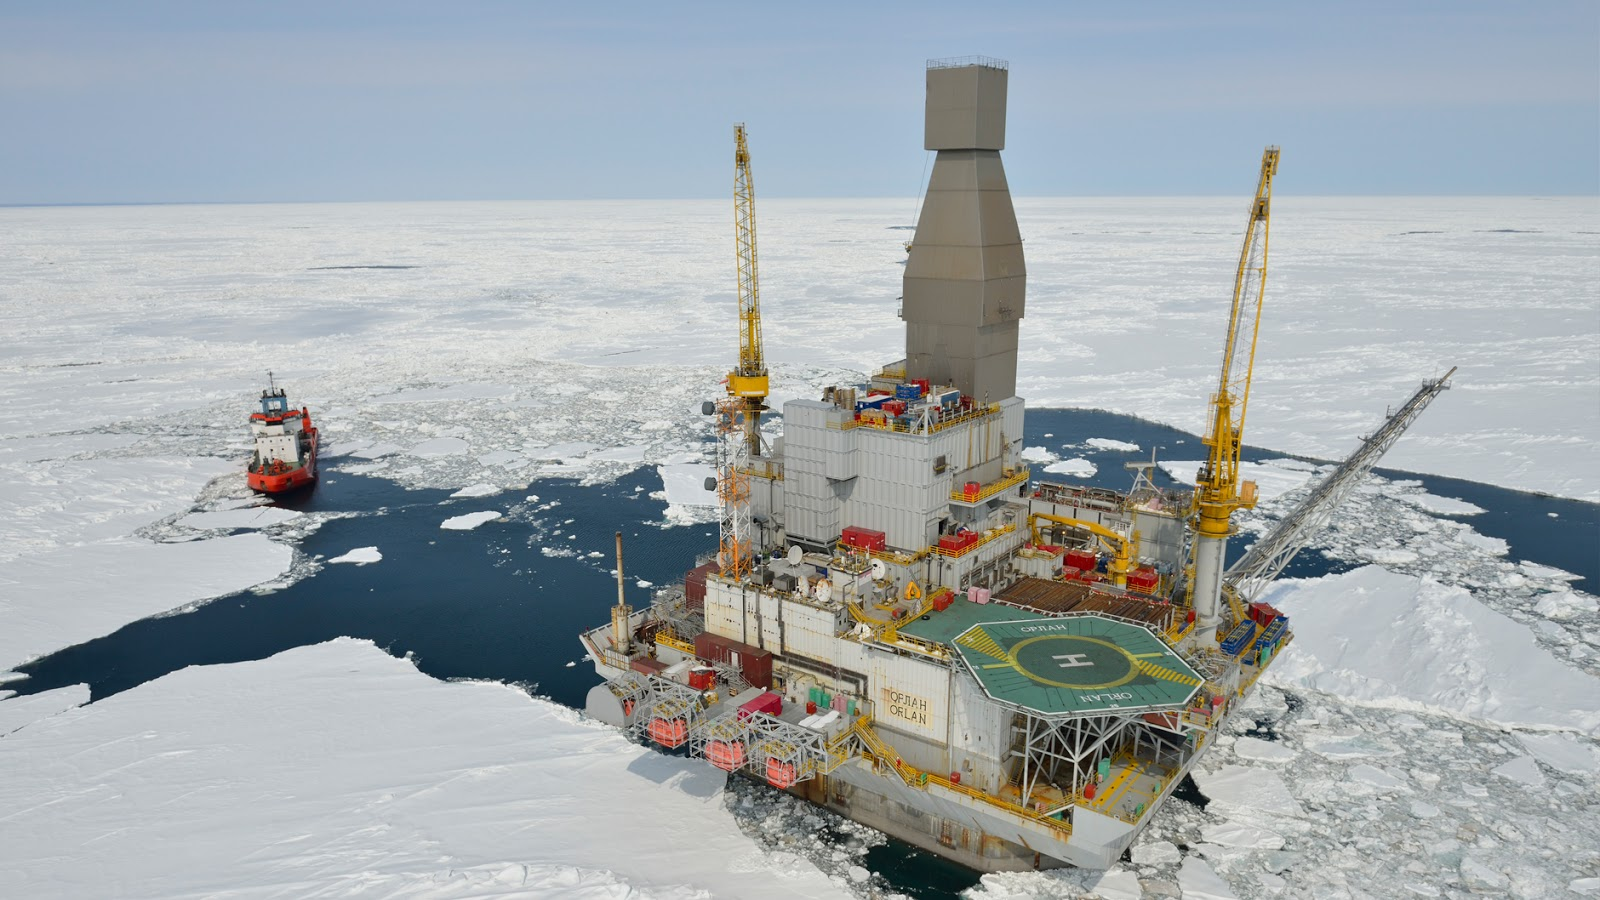 OFFSHORE PLATFORMS: The Existing One Are Strong Enough for Arctic Operations, BSEE Study Finds